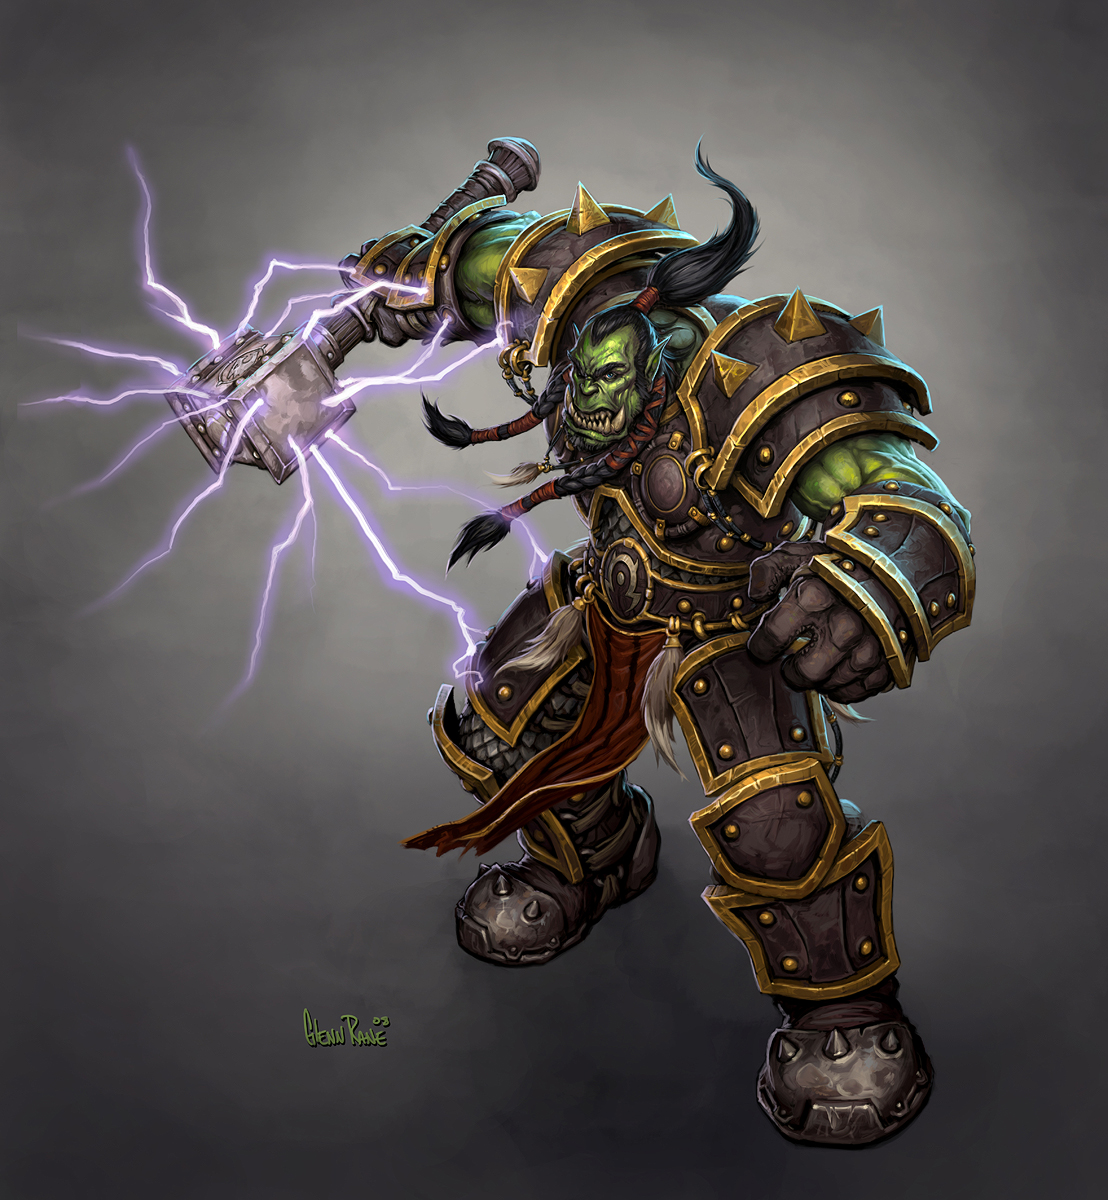 warcraft thrall wow - photo #5